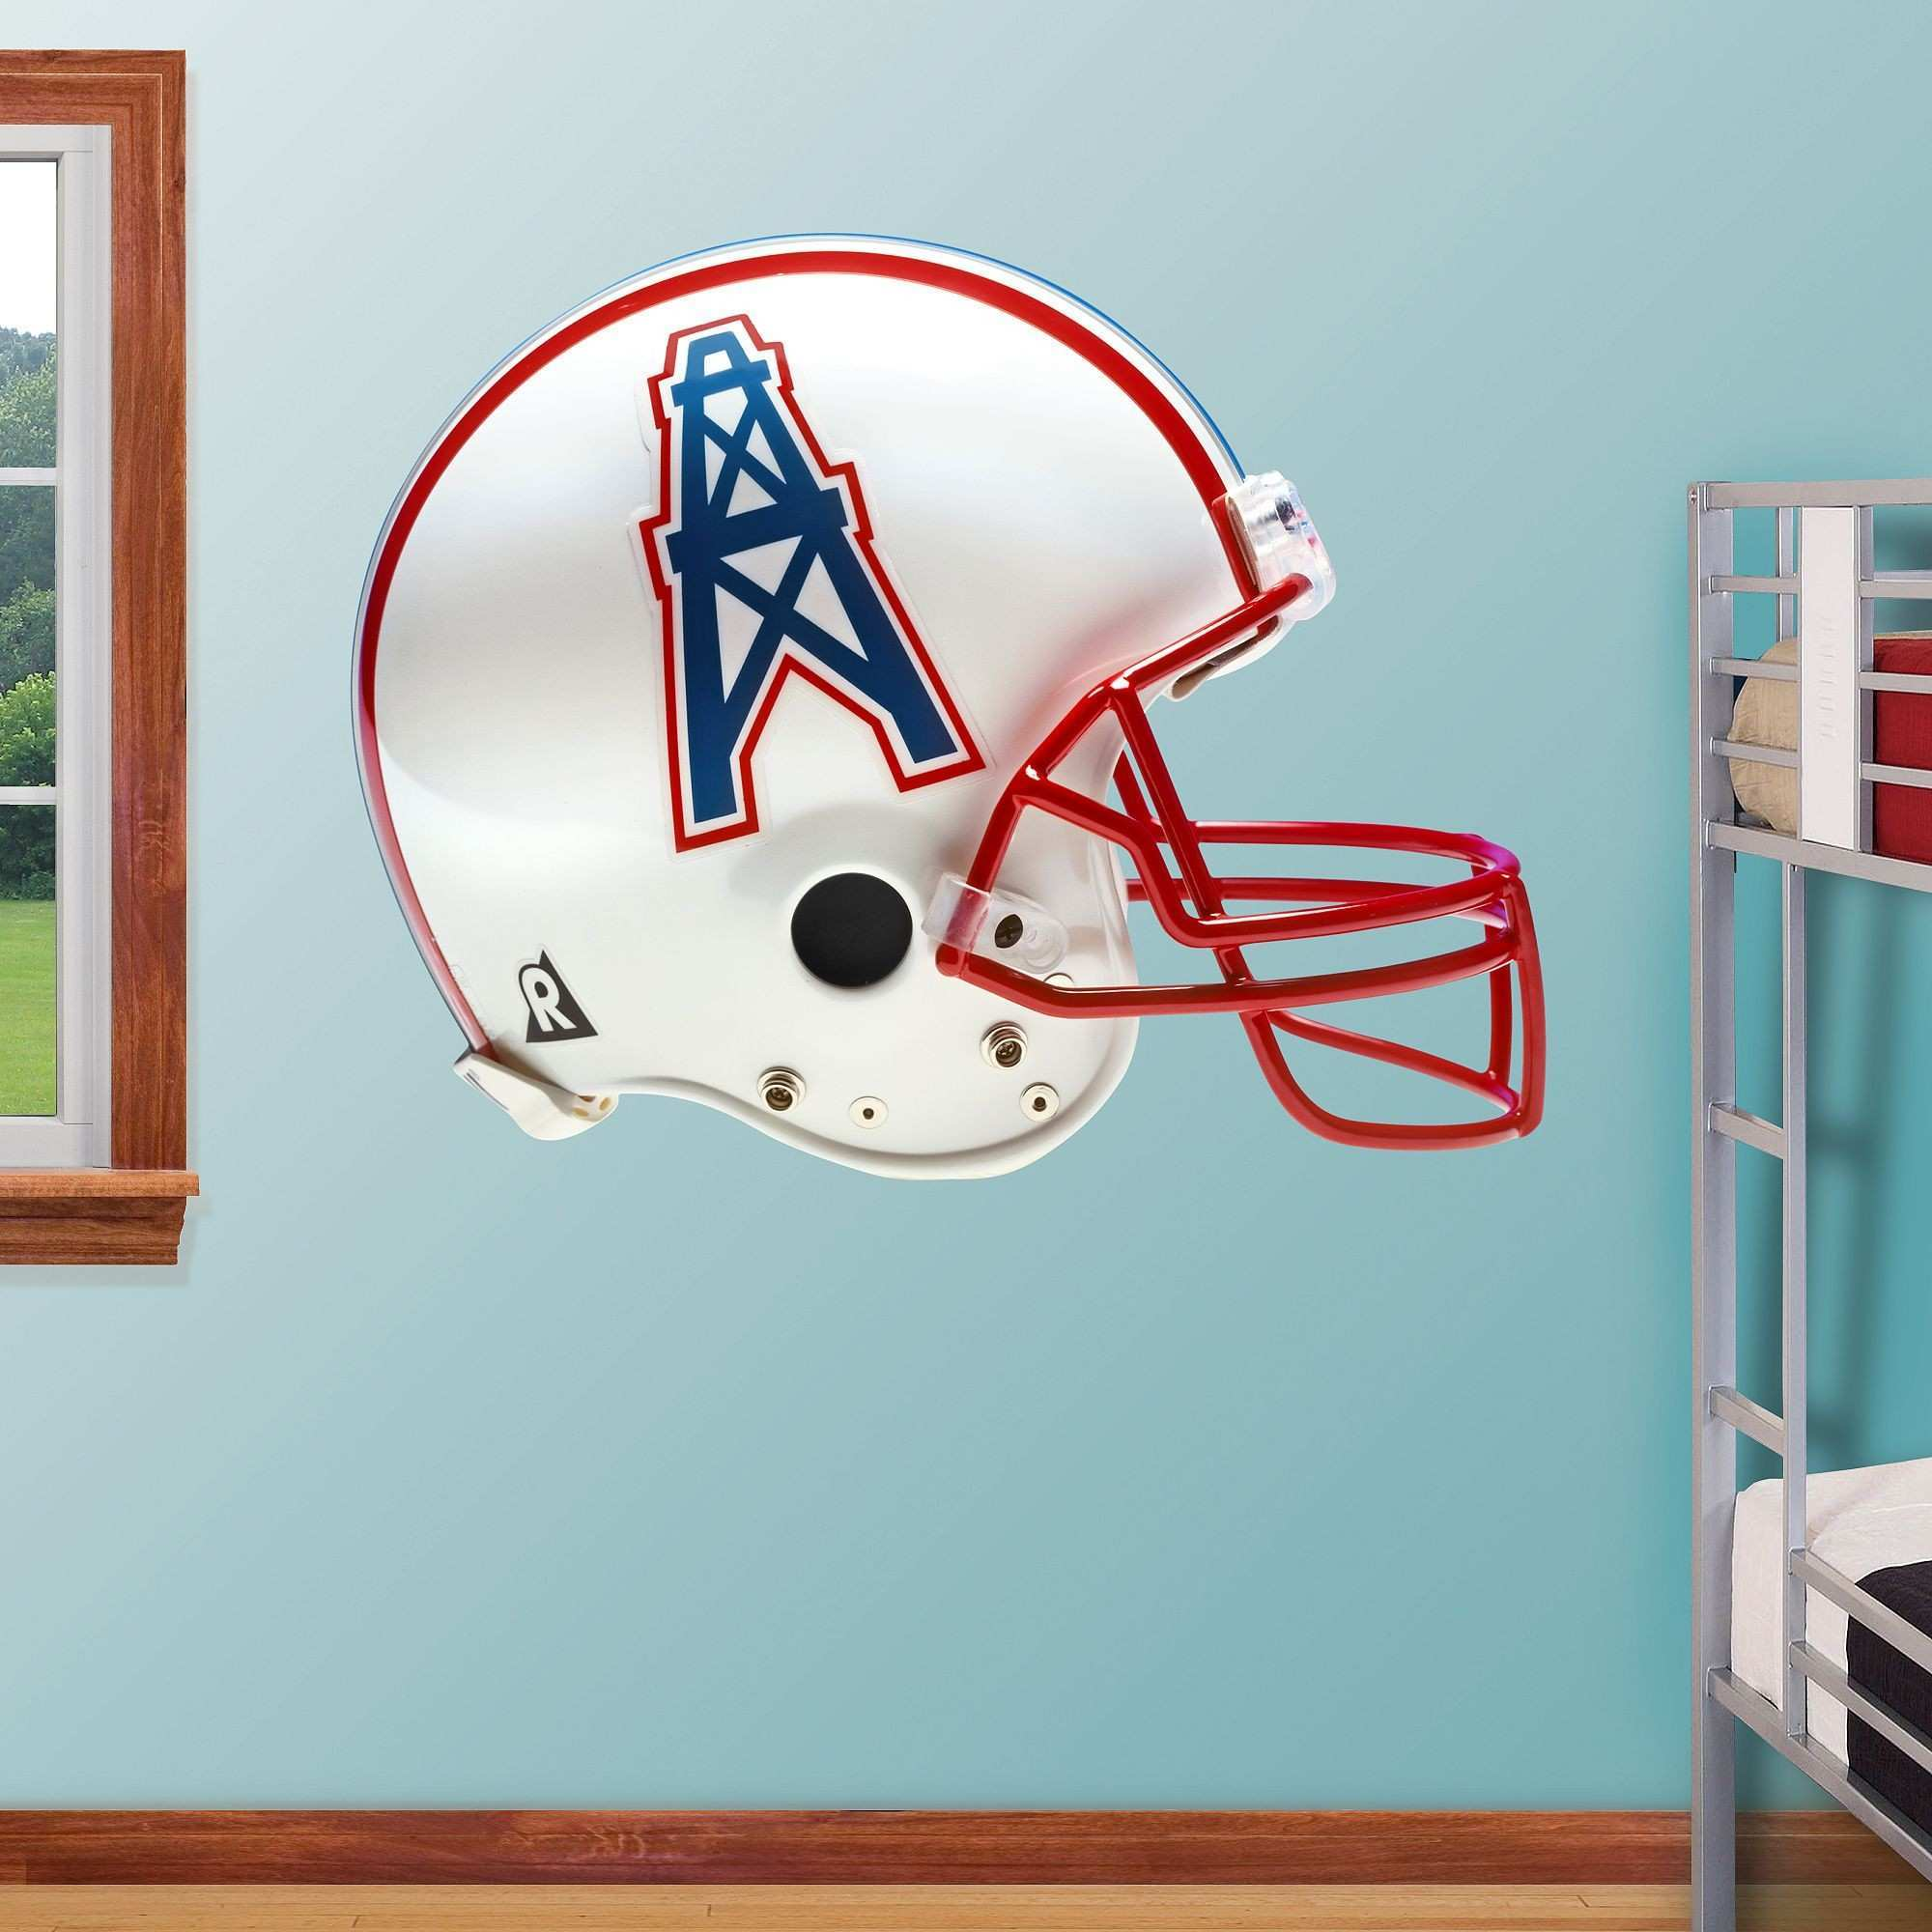 Gear Wall Decor Fresh Houston Oilers Throwback Helmet Real Big Fathead Wall Decal